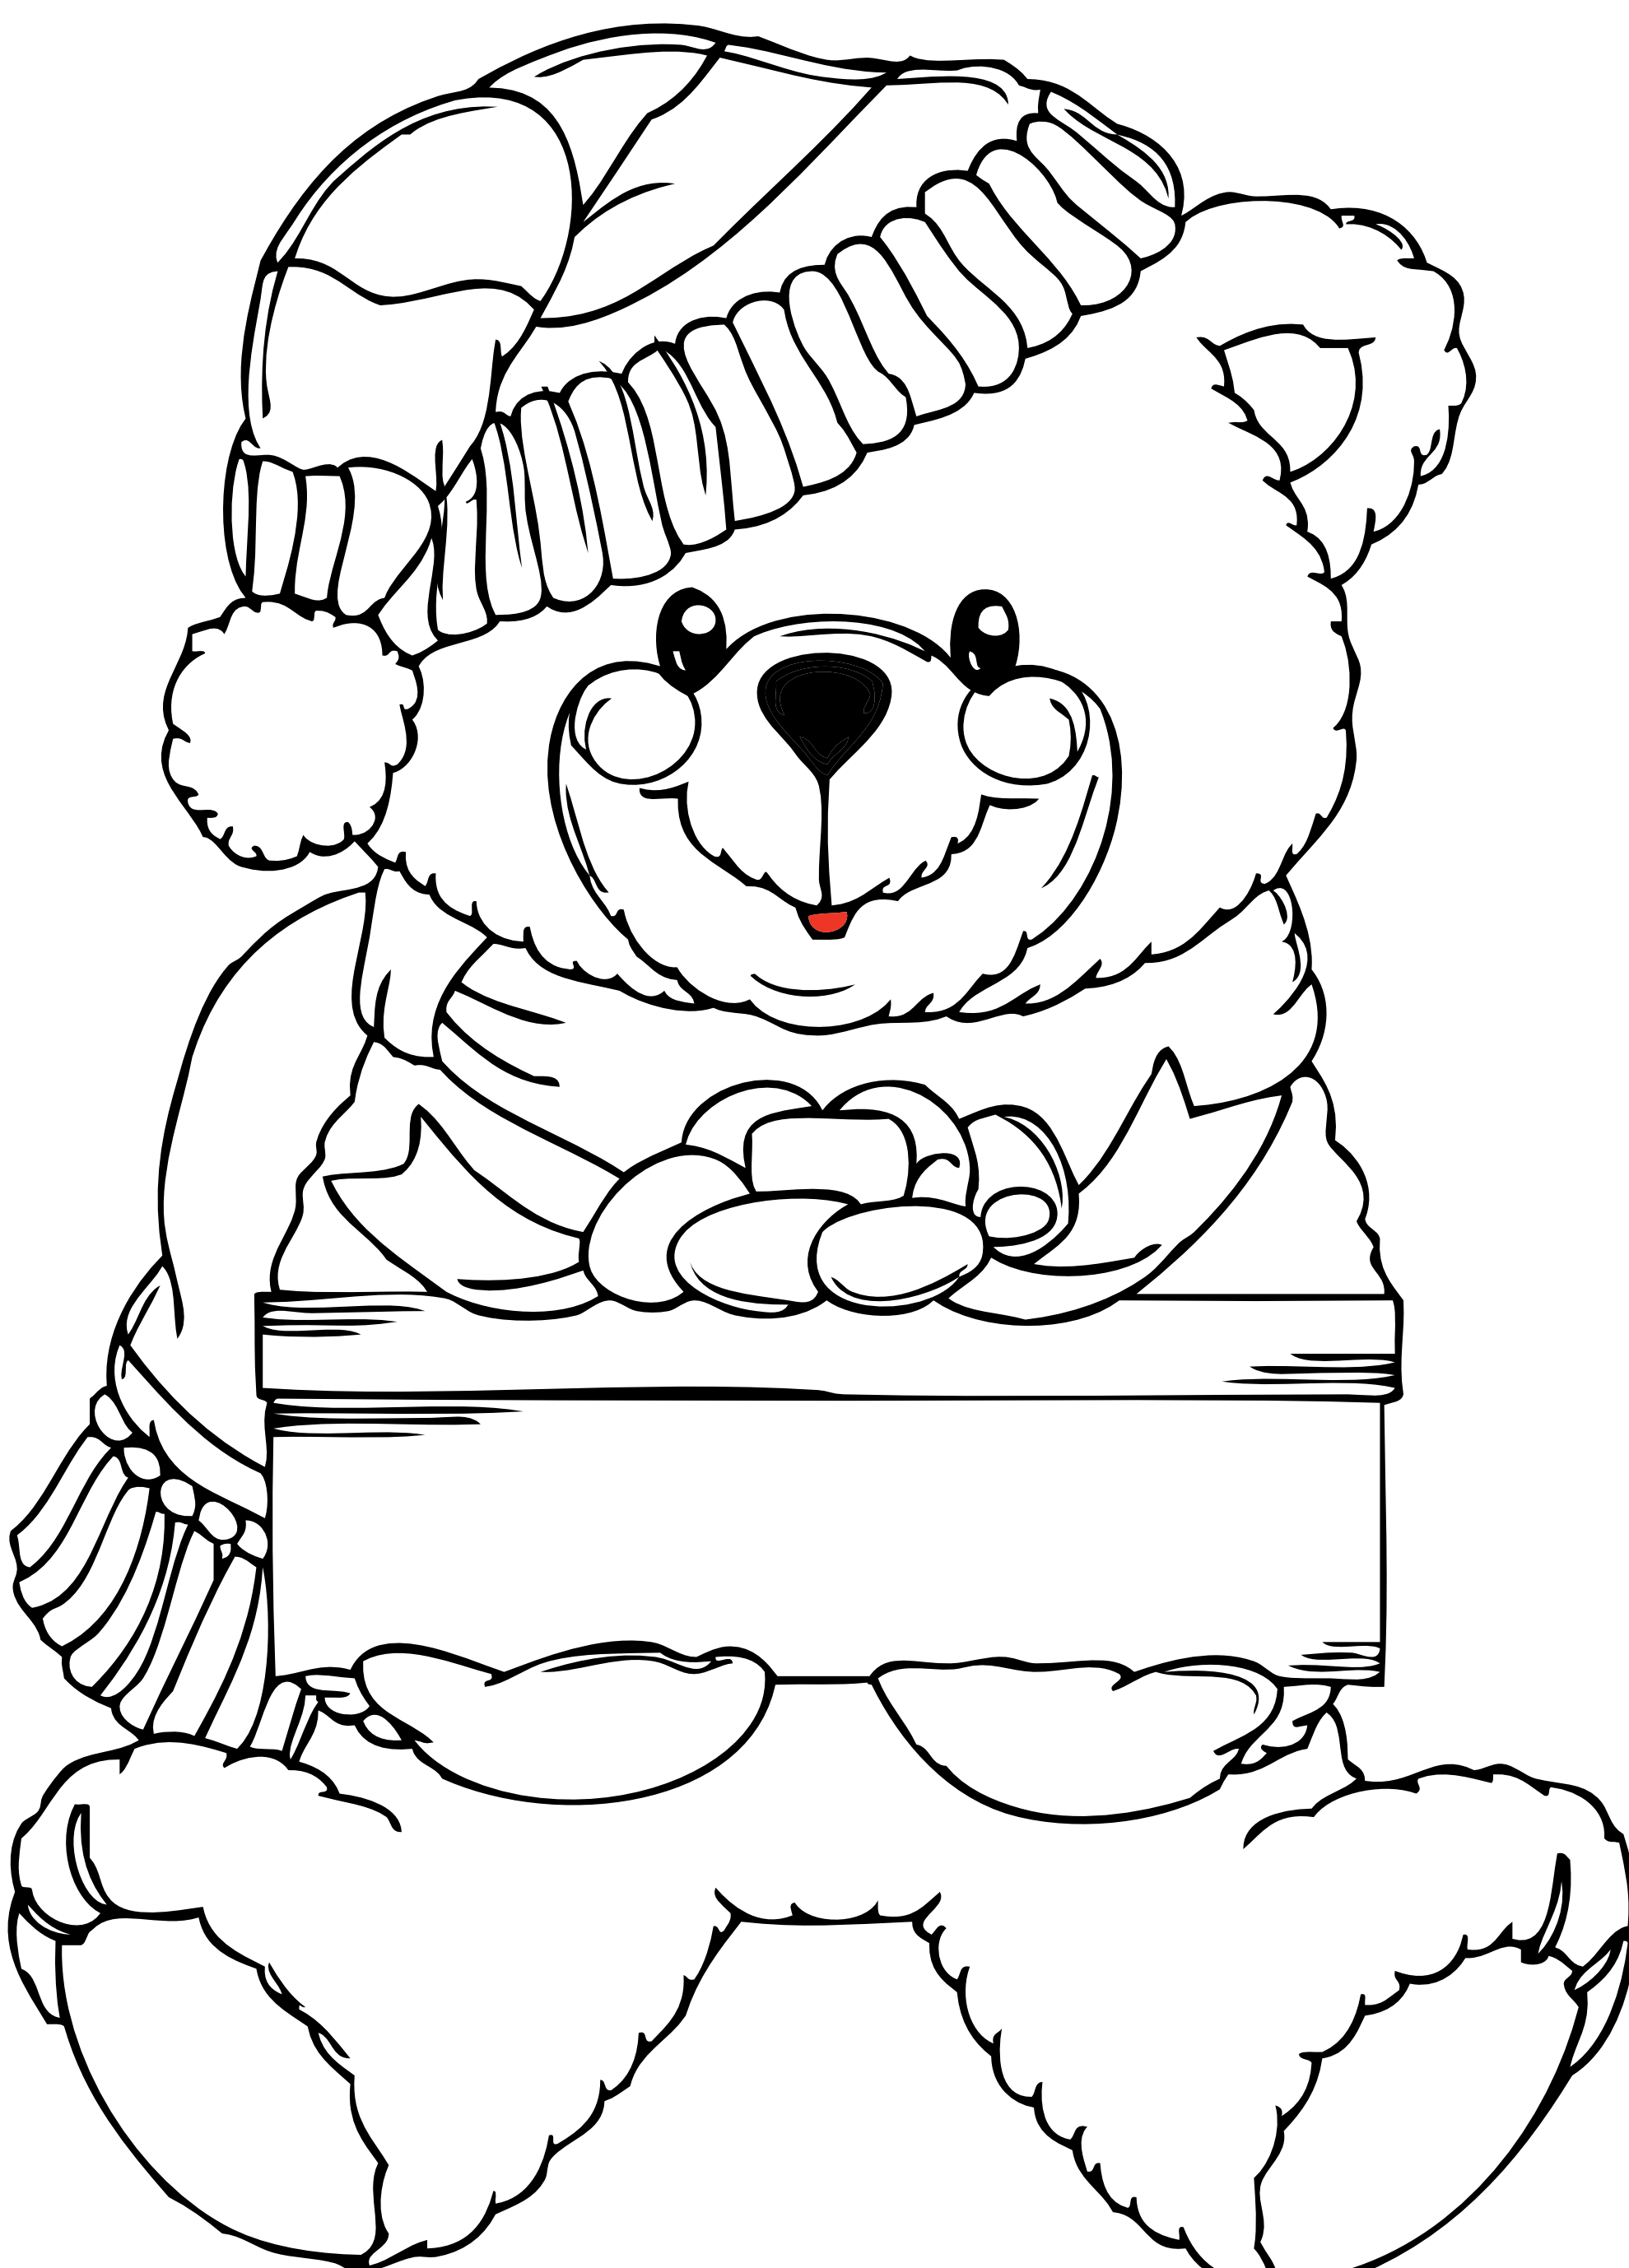 bear images black and white Google Search